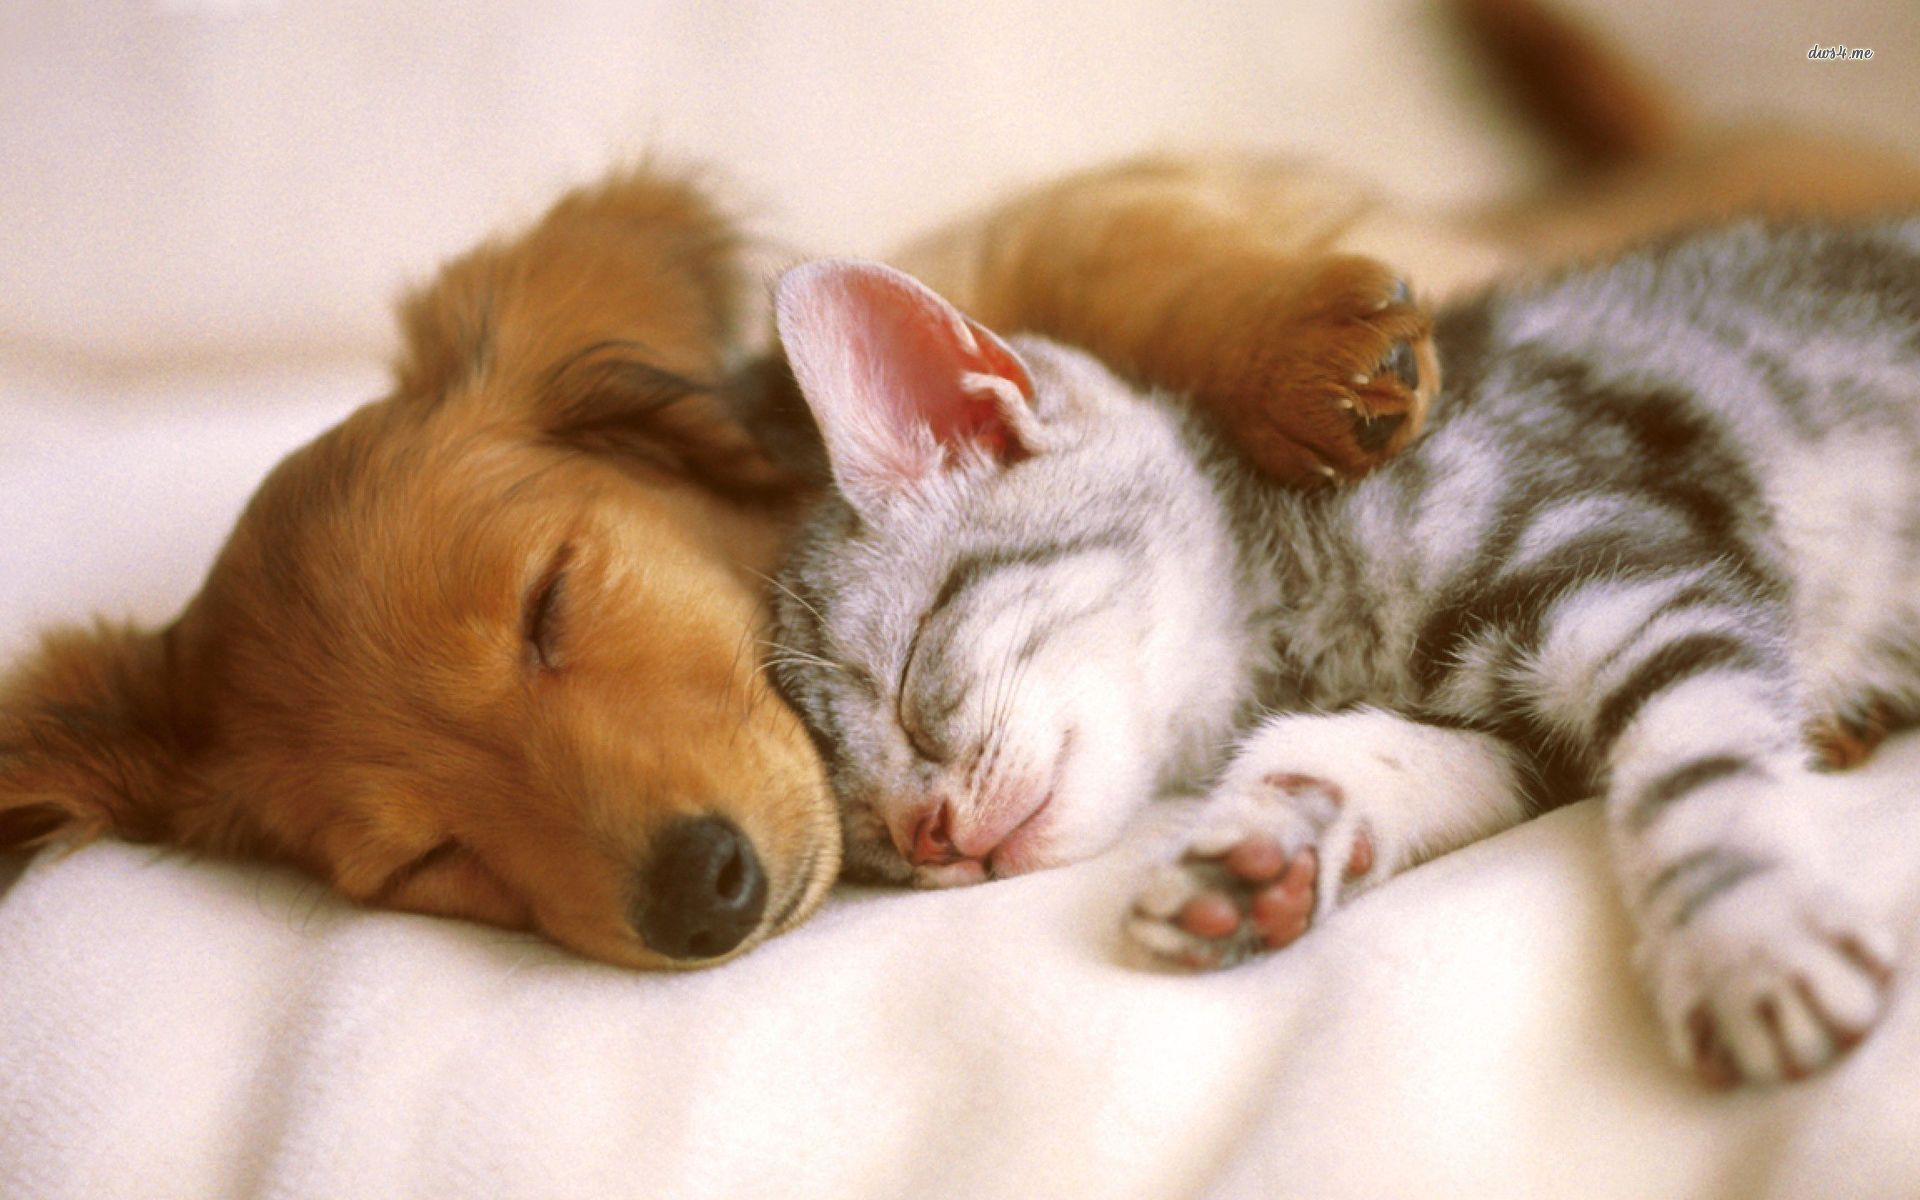 Free Christian Books Cute Puppies And Kittens Kittens And Puppies Kittens Cutest